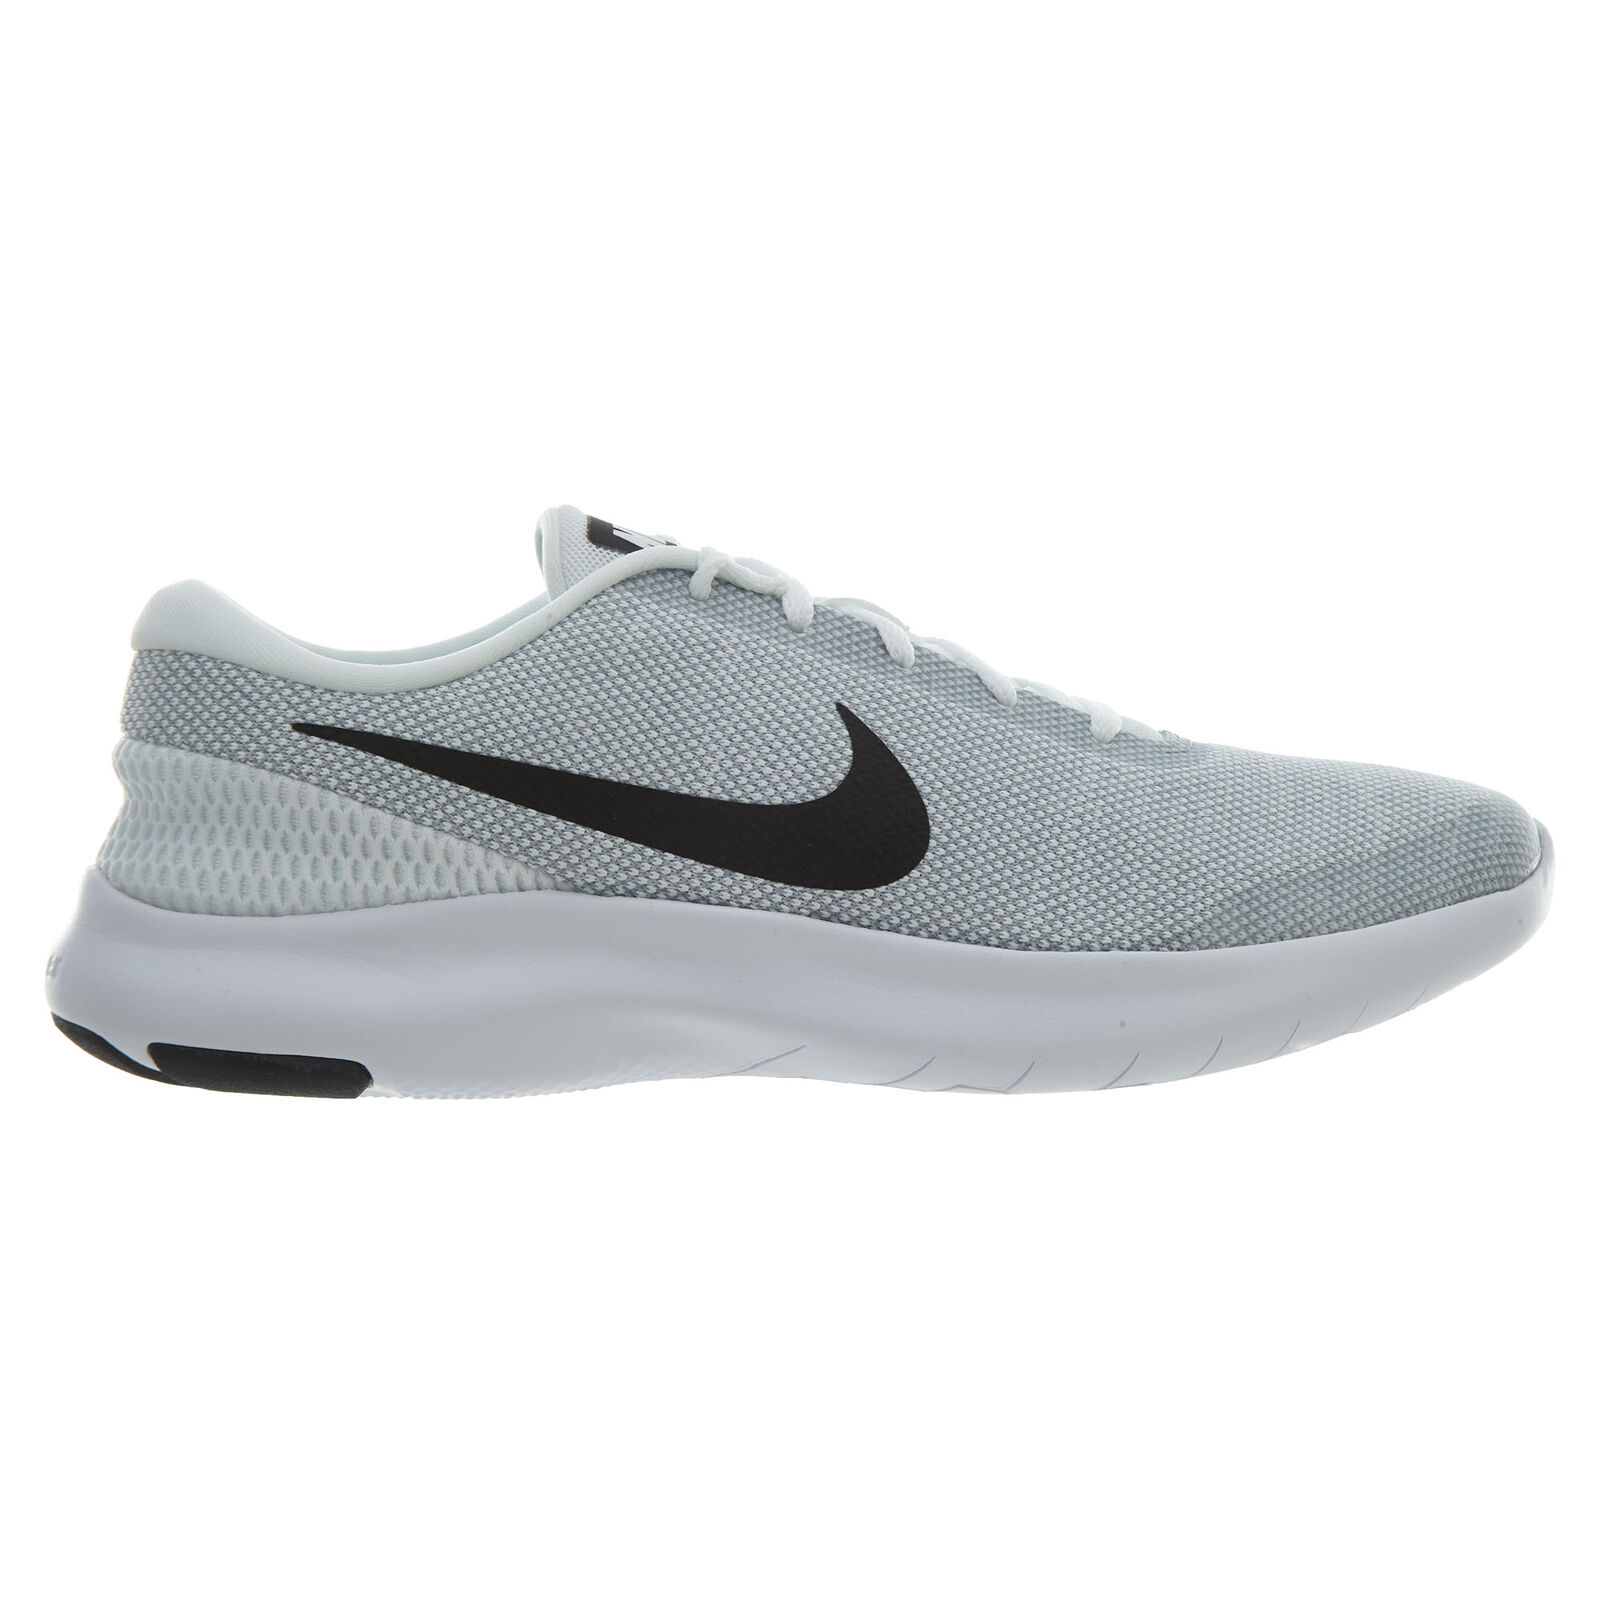 Nike Flex Experience RN 7 Mens 908985-100 Grey White Running Shoes Size 9